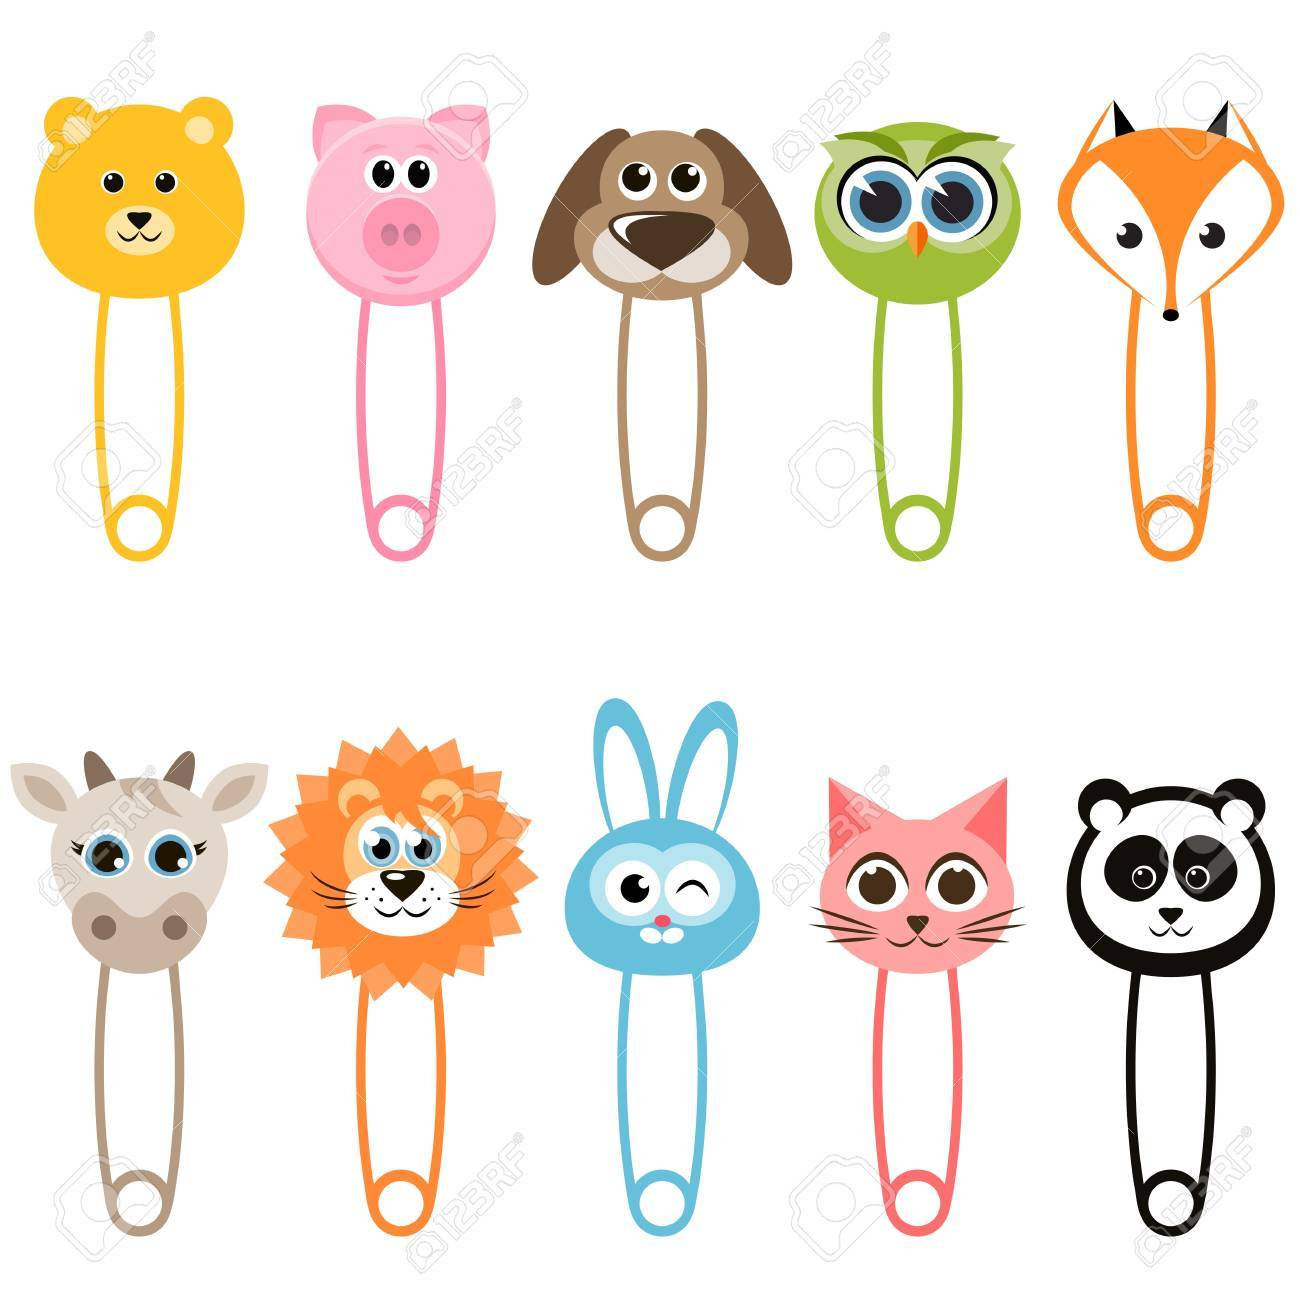 set of baby animal safety pins royalty free cliparts vectors and